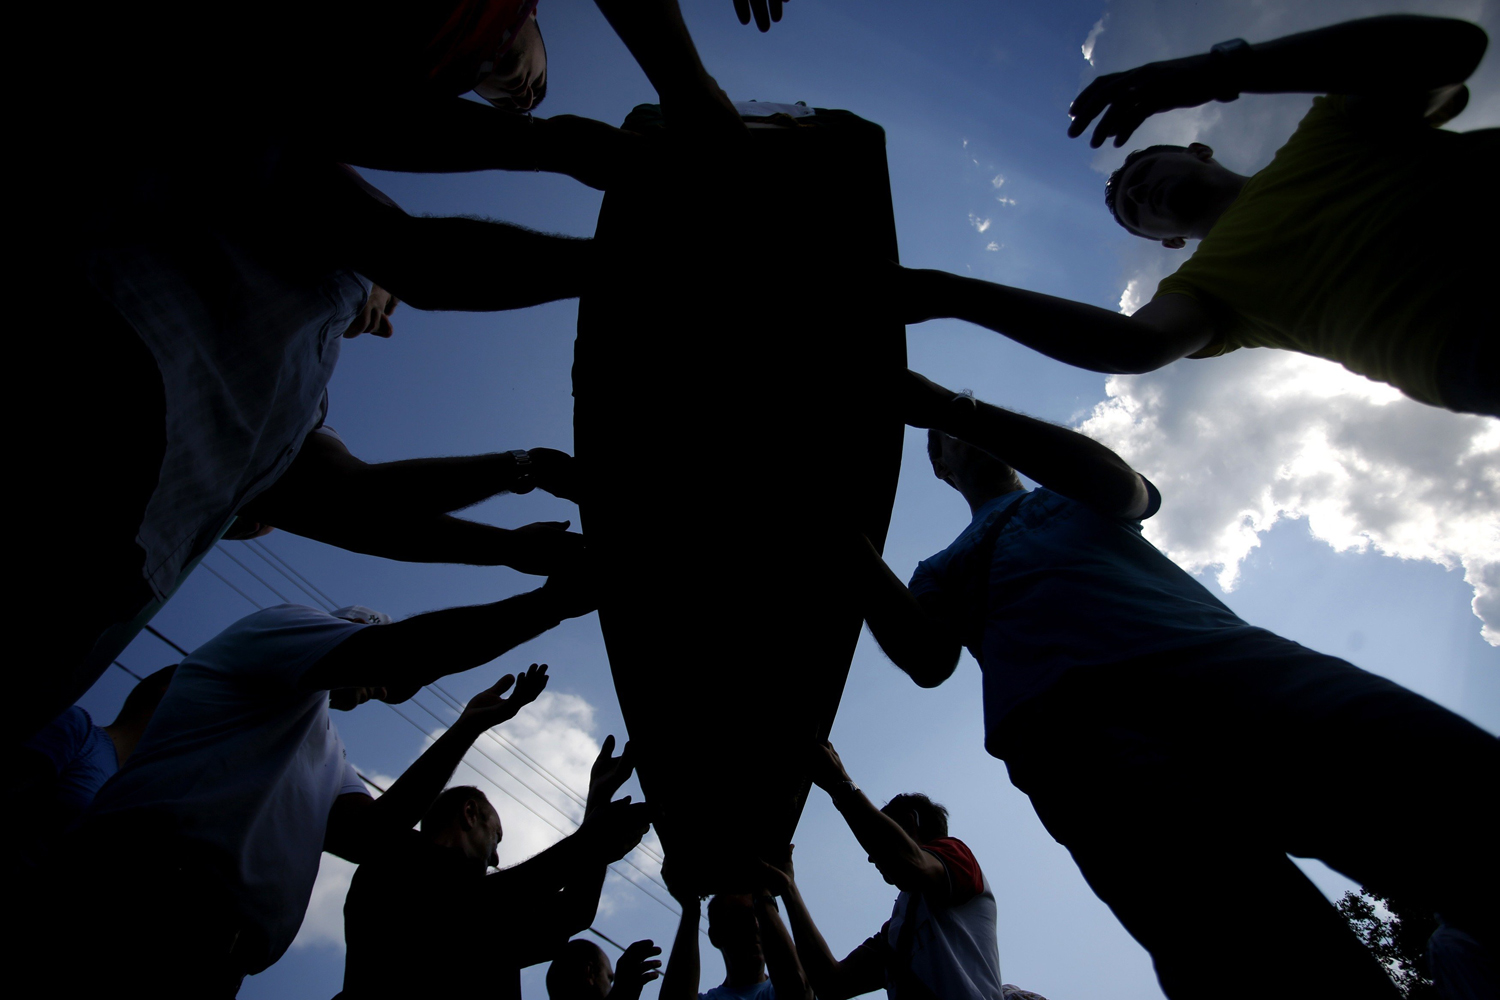 Jul. 19, 2014. Bosnian Muslims carry coffins with bodies from a mass grave, before a mass funeral in Kozarac, near Prijedor.